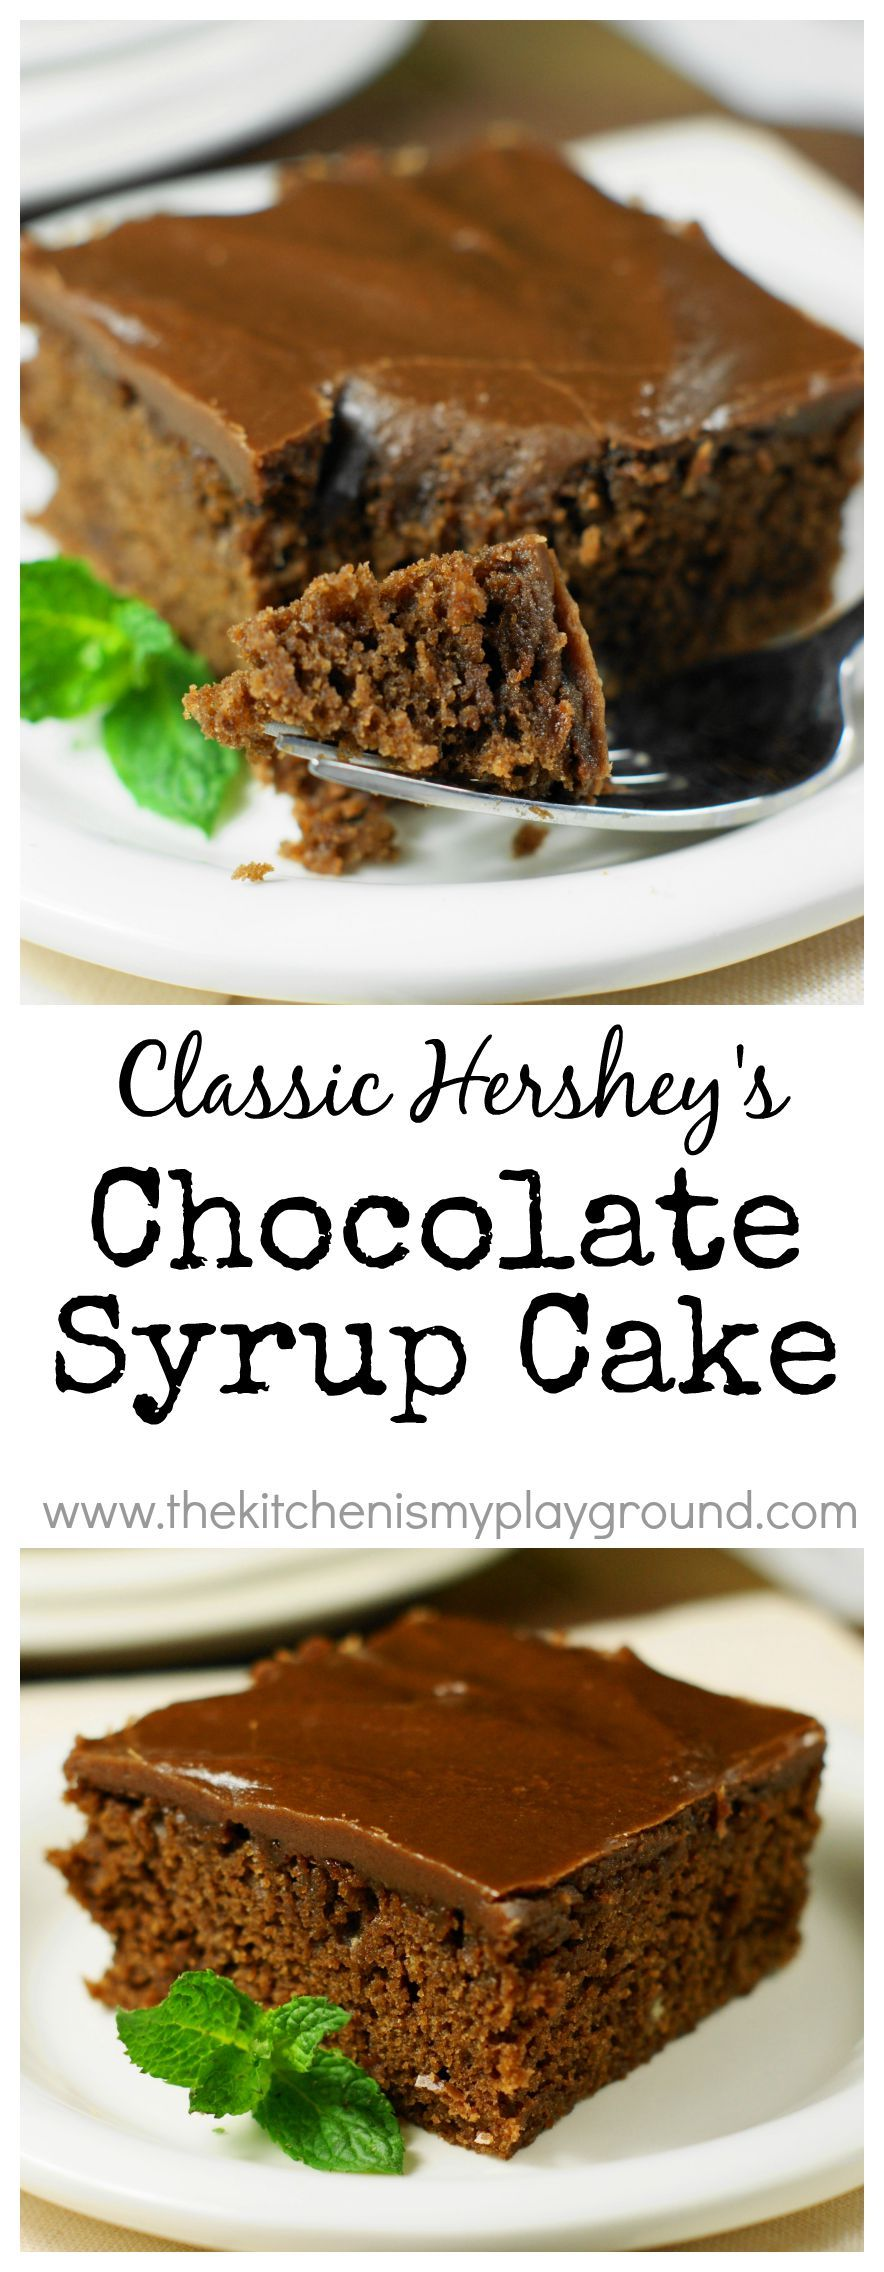 Classic hersheys chocolate syrup cake topped with rich